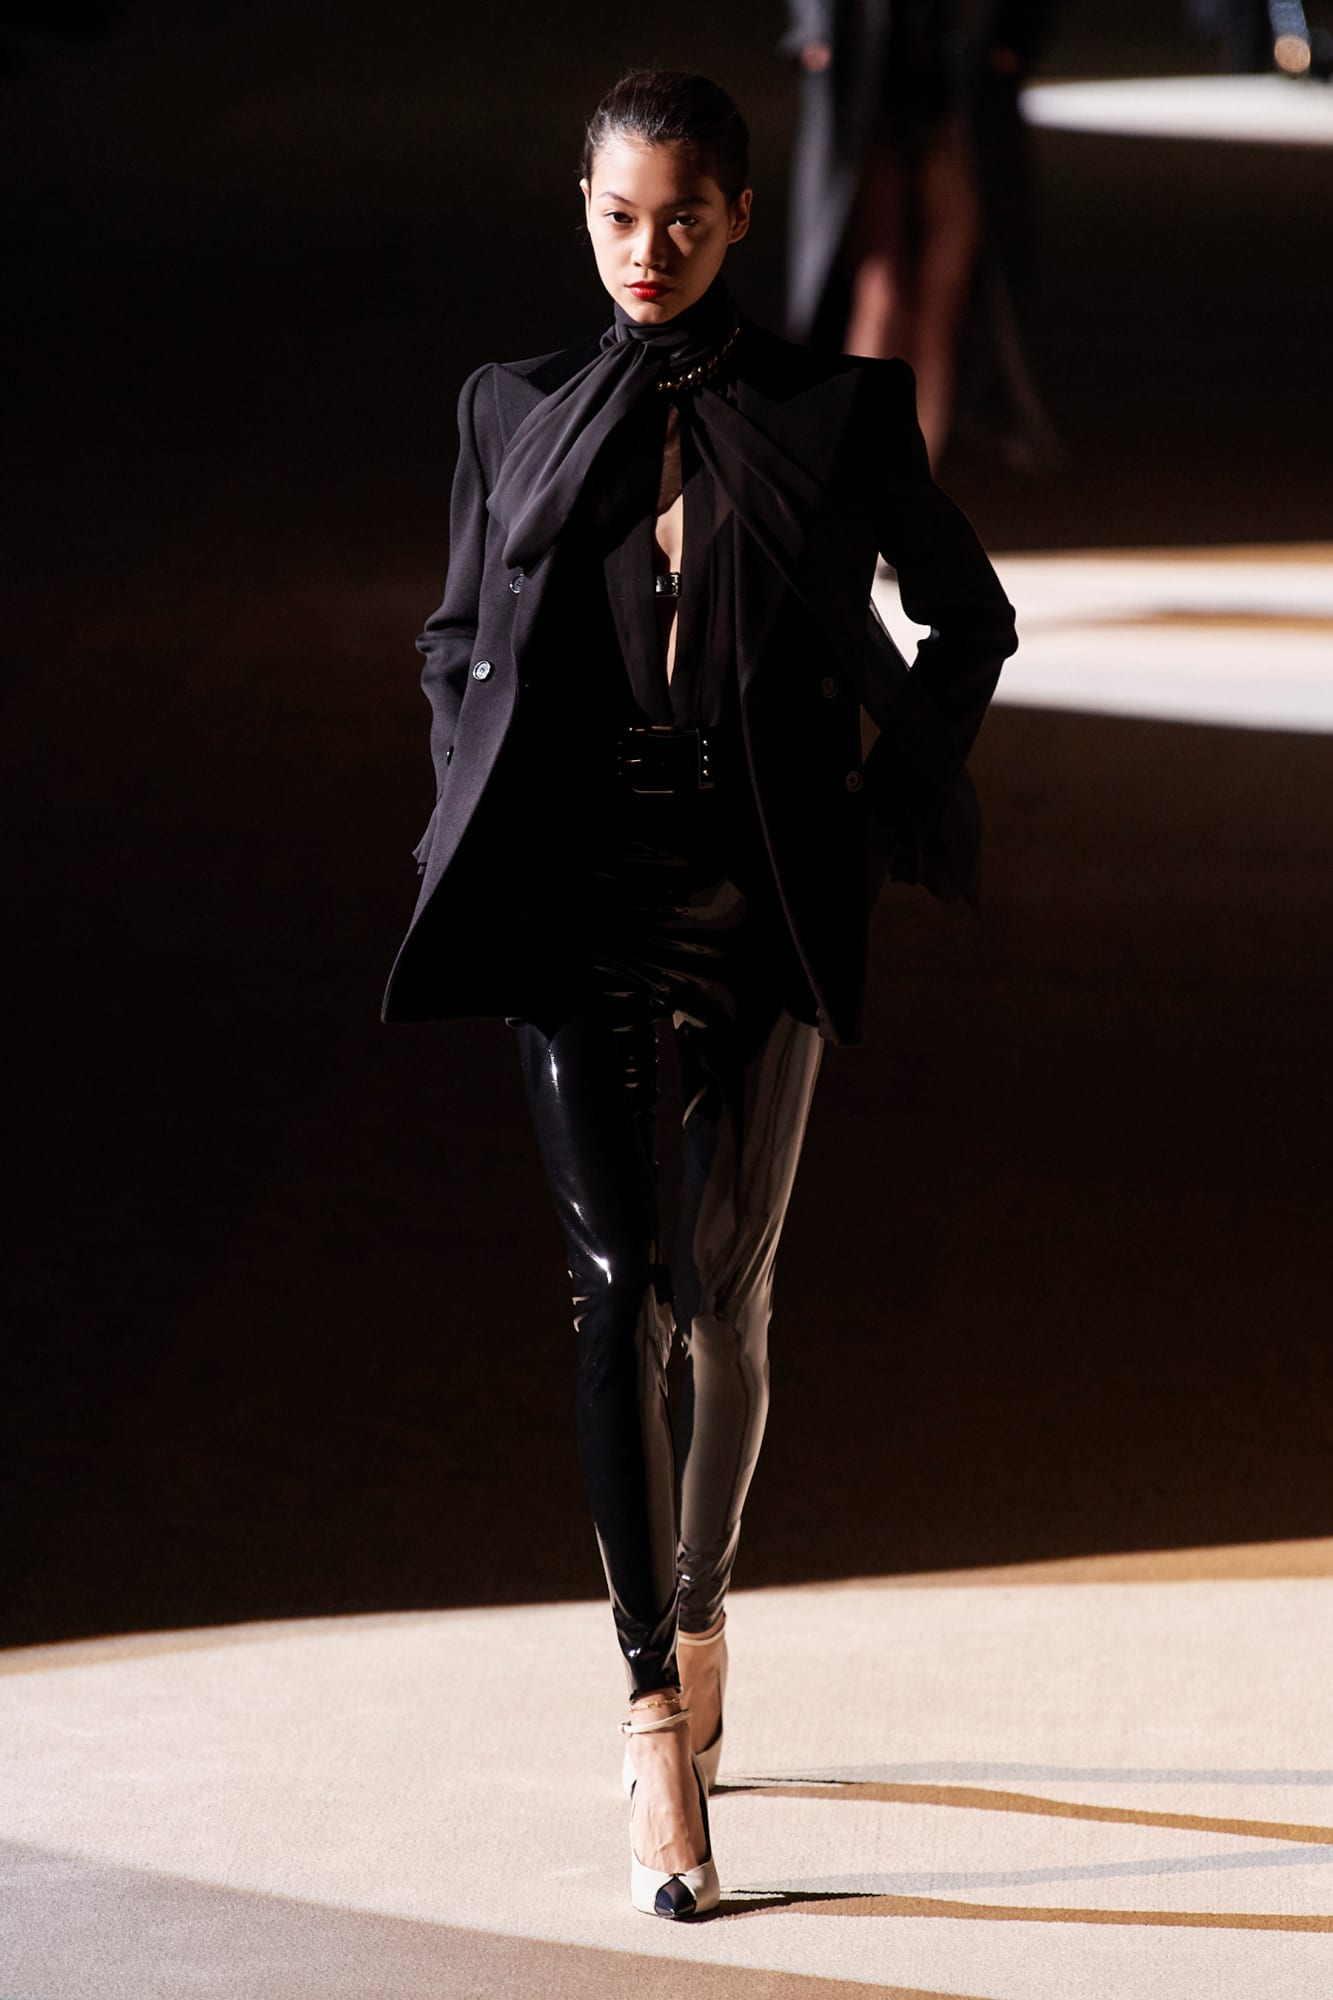 bst saint laurent thu đông 2020 look 2